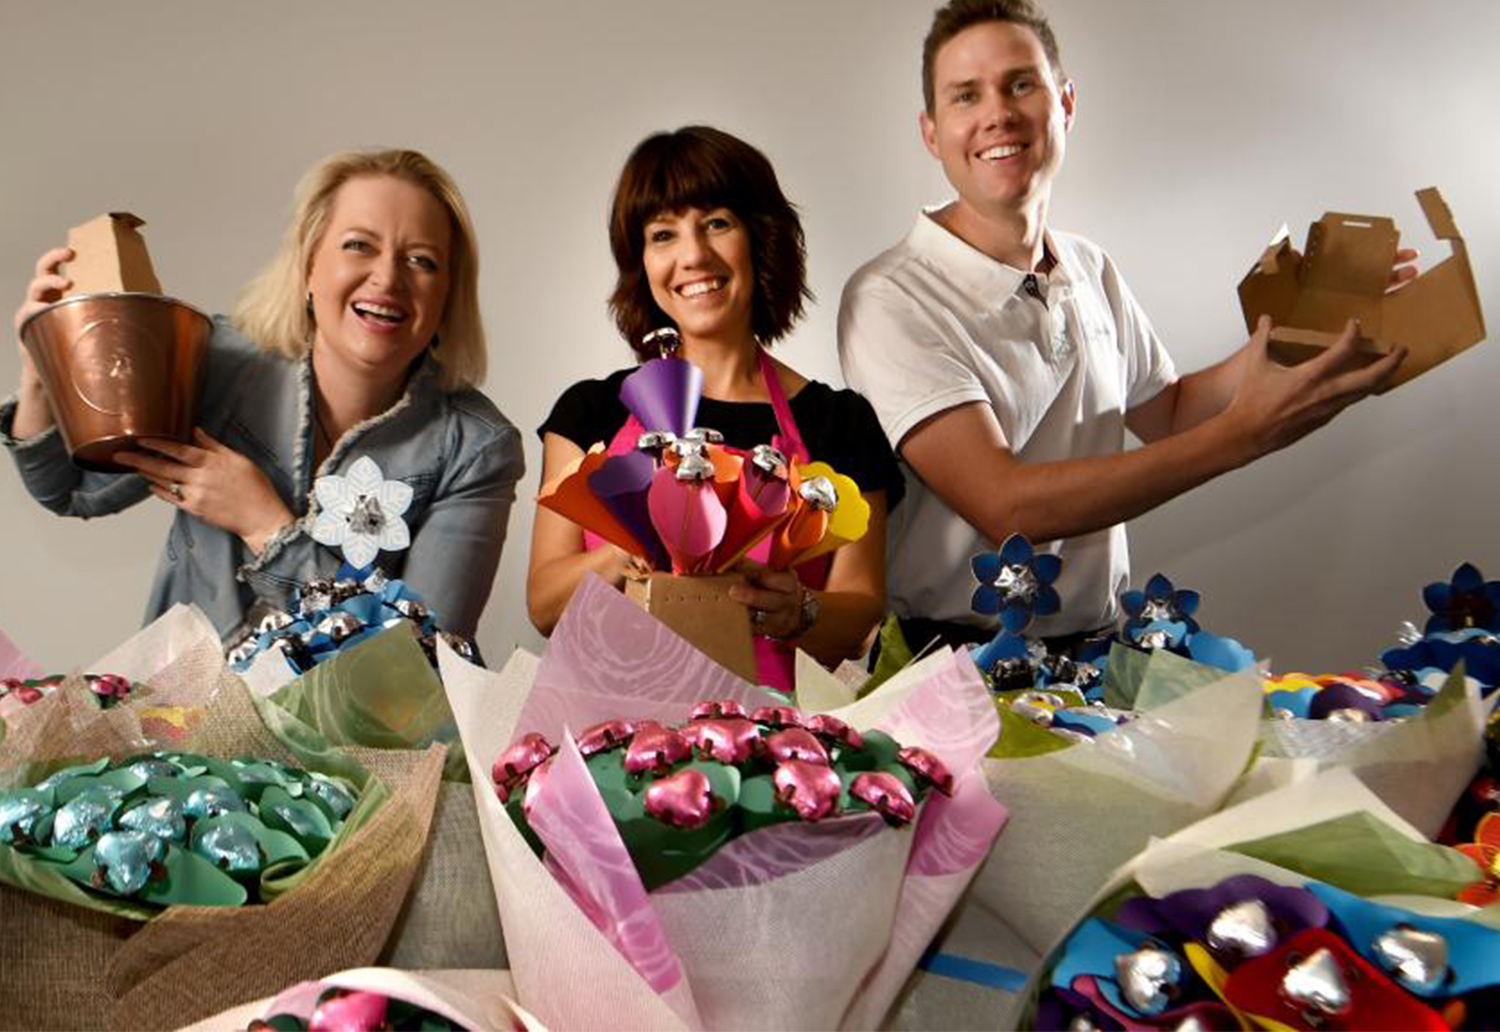 Image of Kelly Jamieson, Chrissie and Simon Harris at Edible Blooms